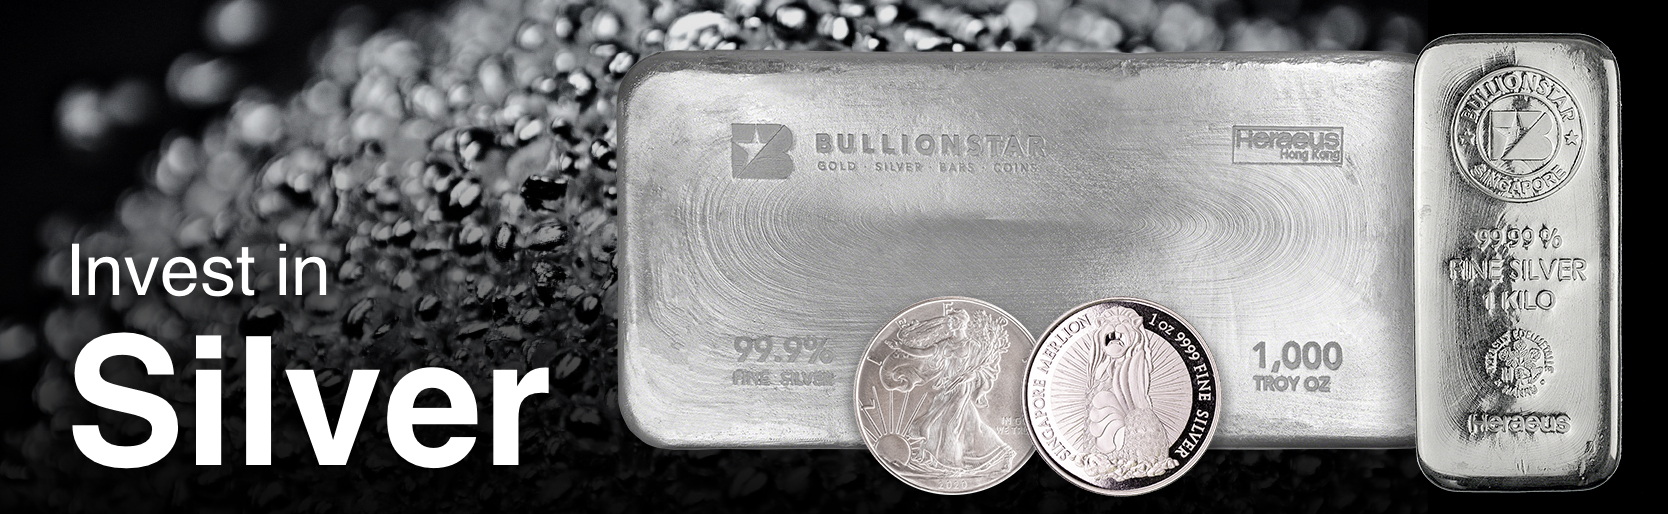 Why Invest in Silver